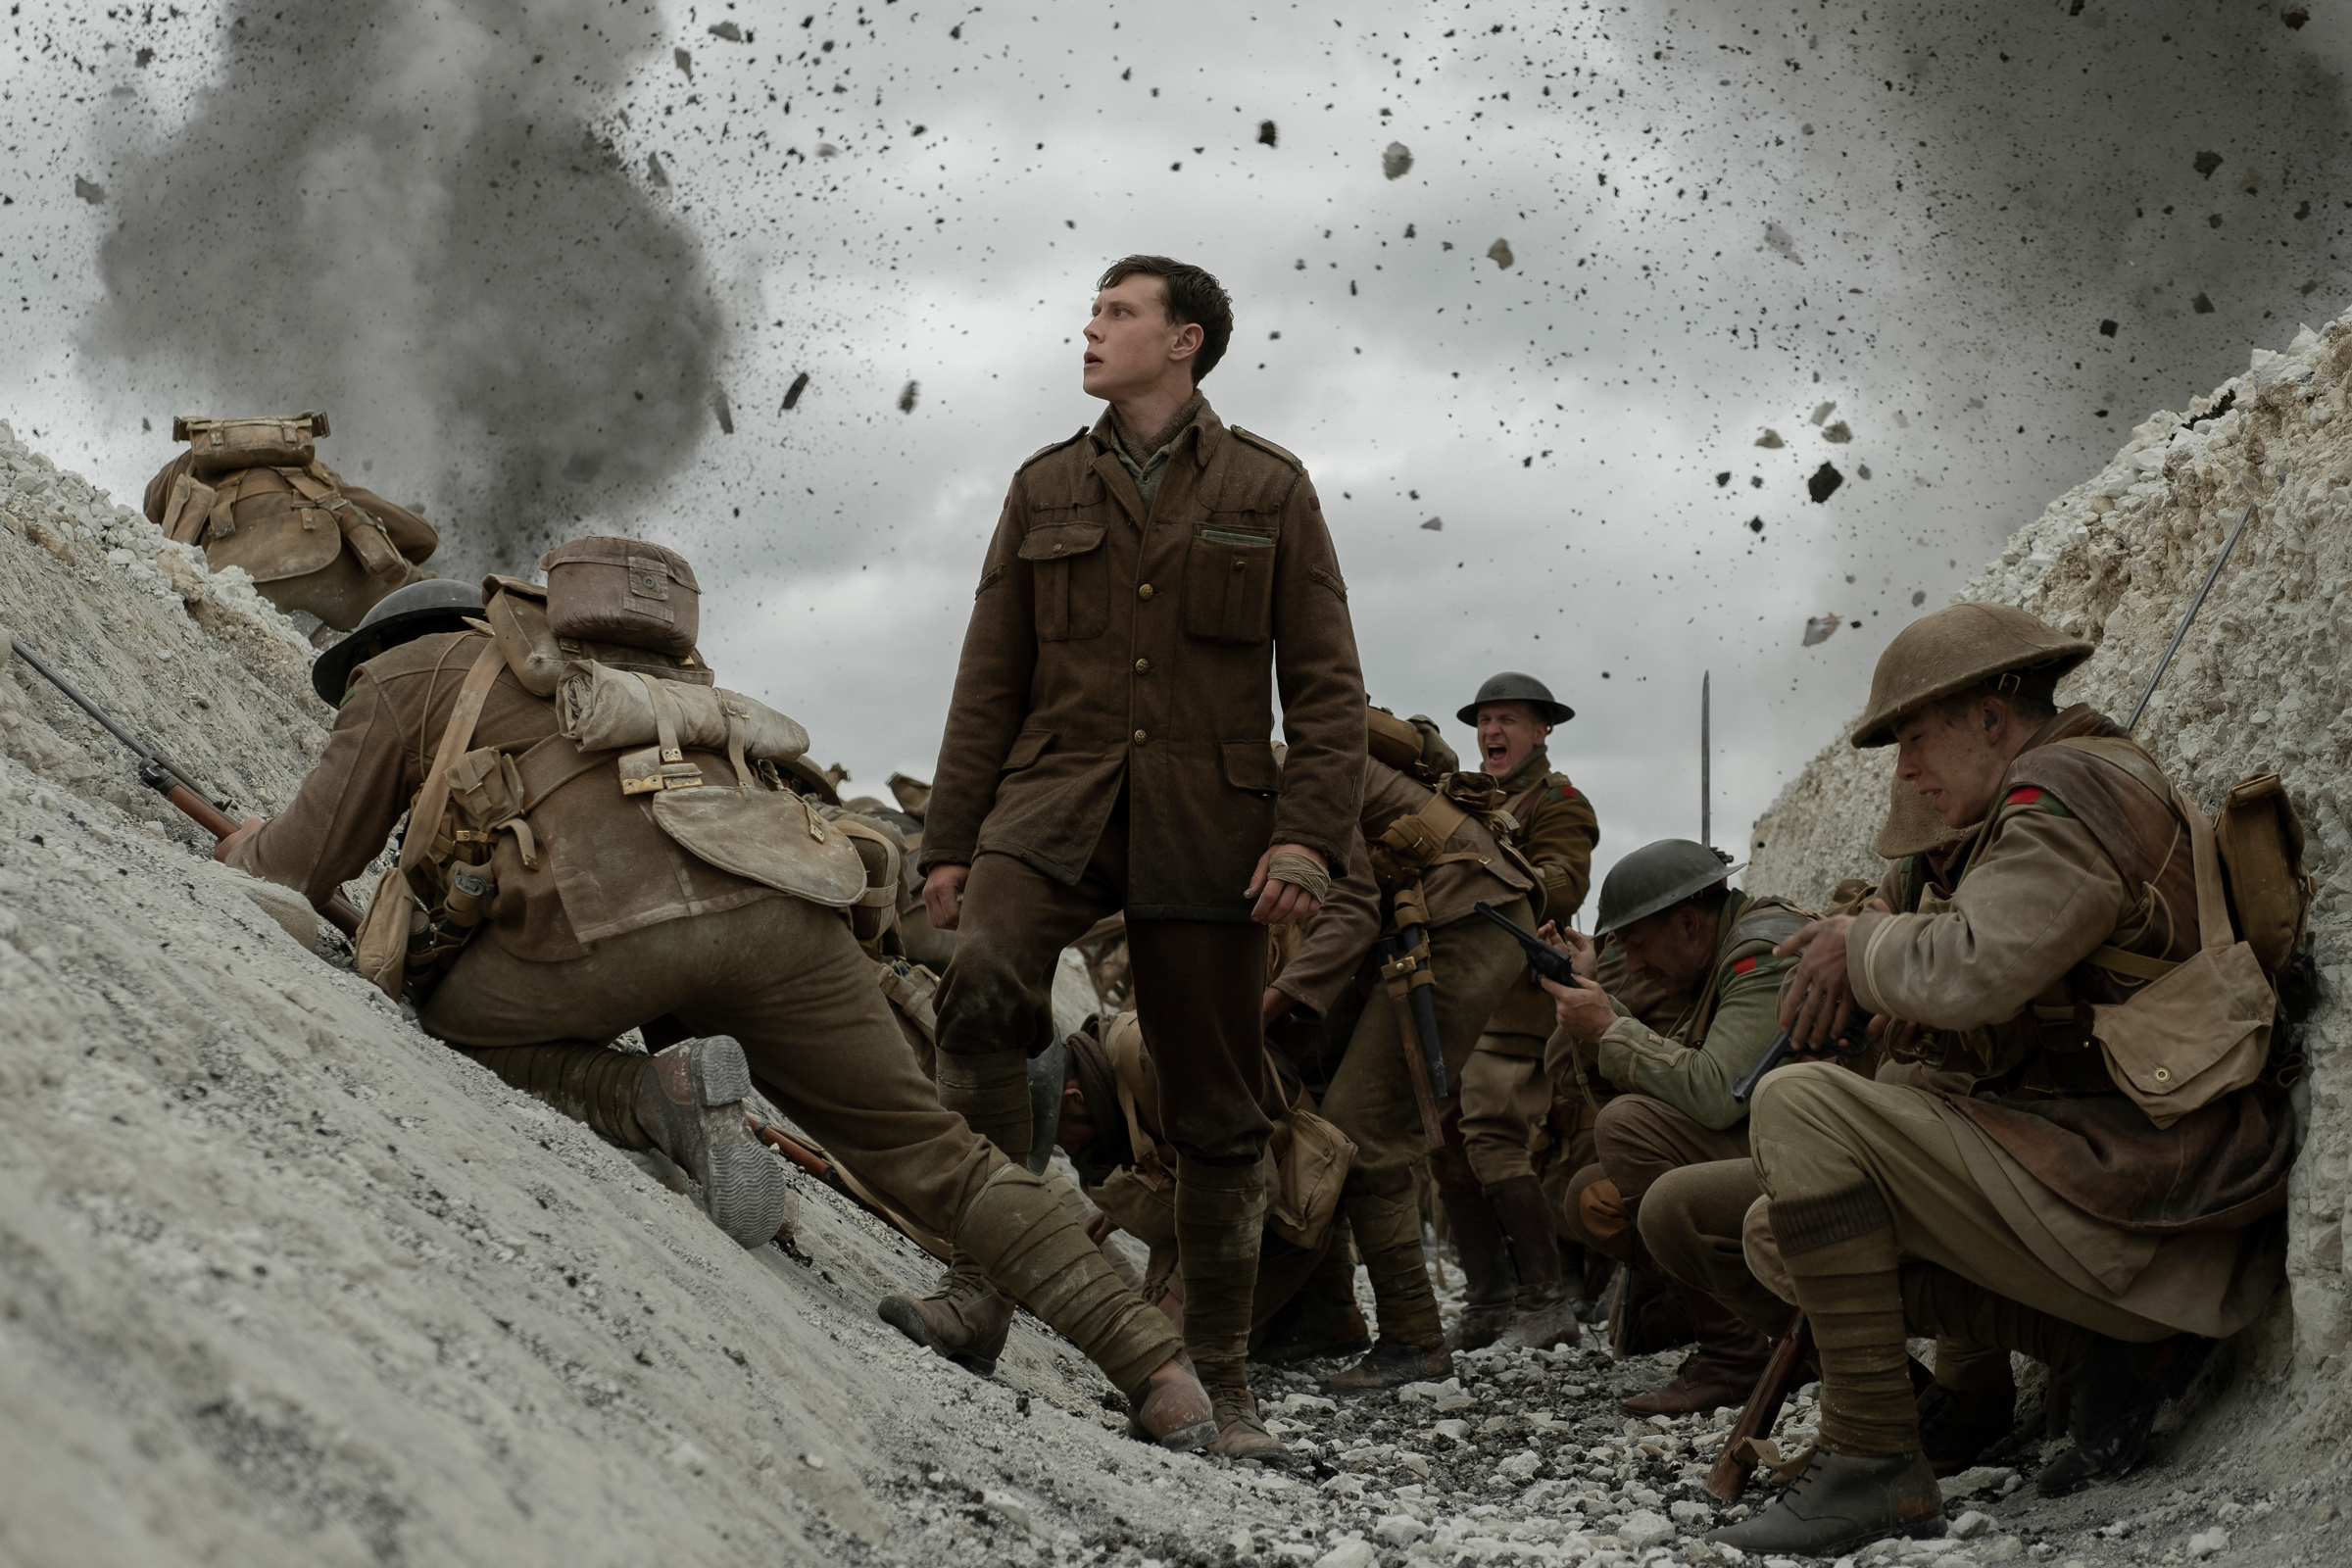 Watch Soldiers Fight Time to Keep Troops Alive in Trailer for World War I Drama '1917'